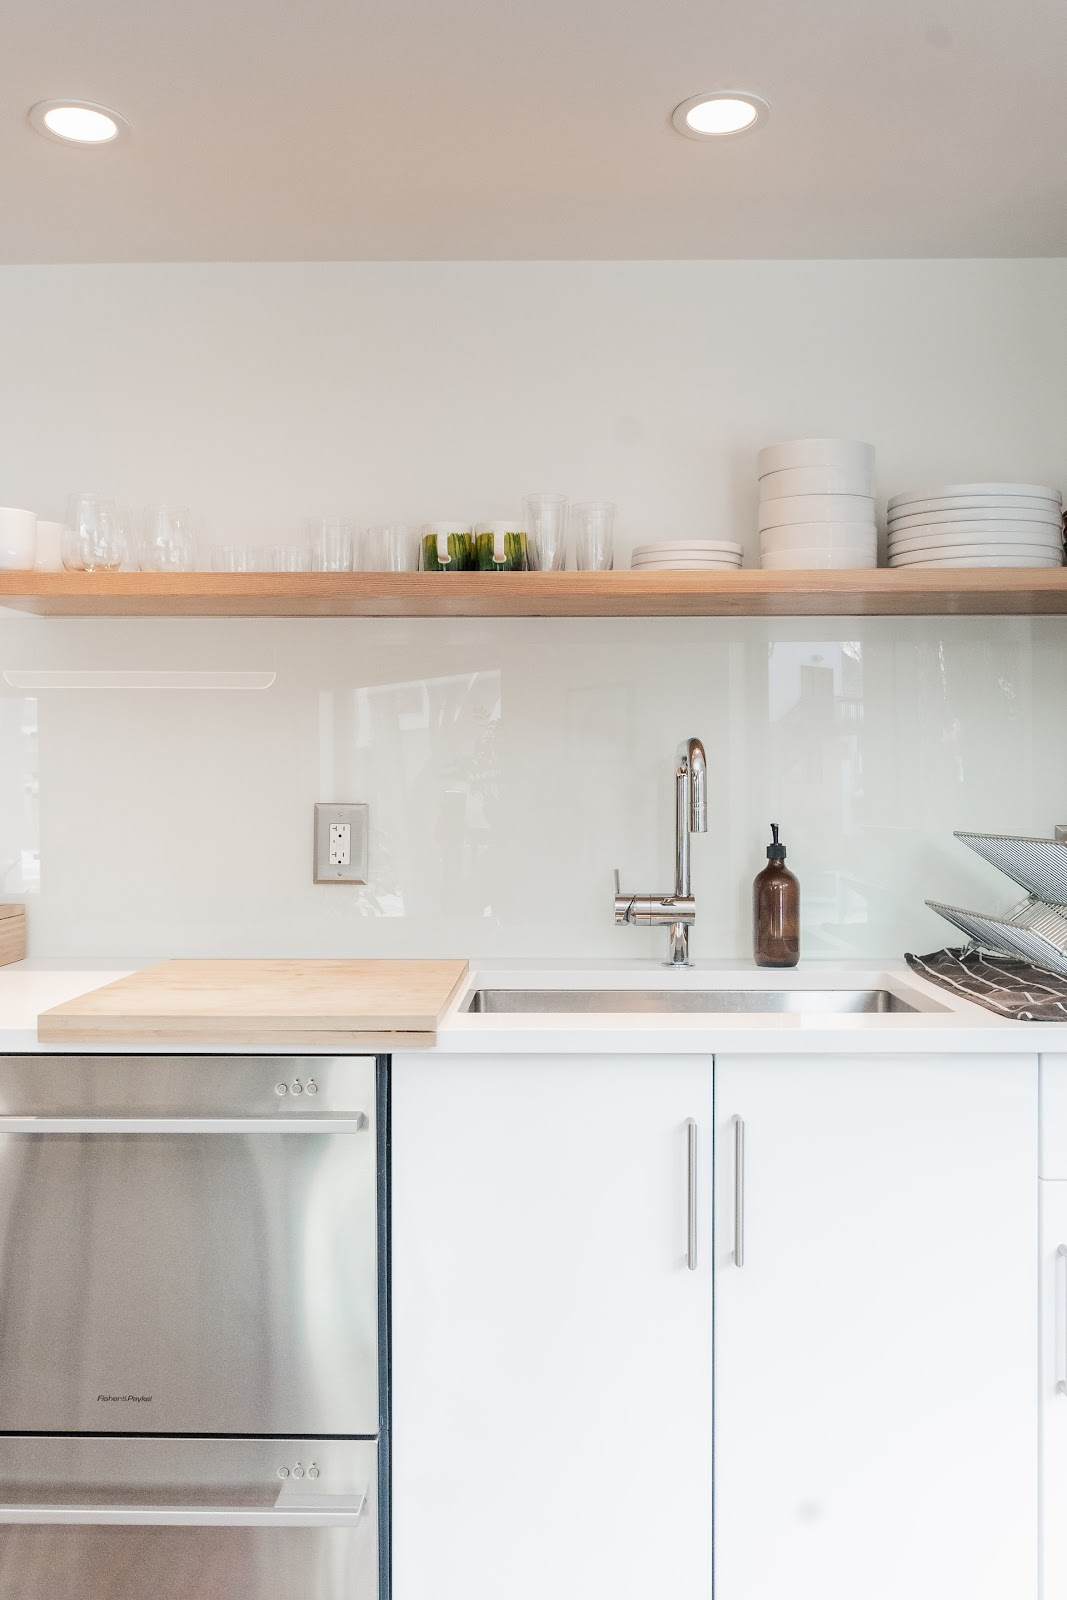 Kitchen done in white and beige tones with an open shelf stacked with plates, bowls and glasses.